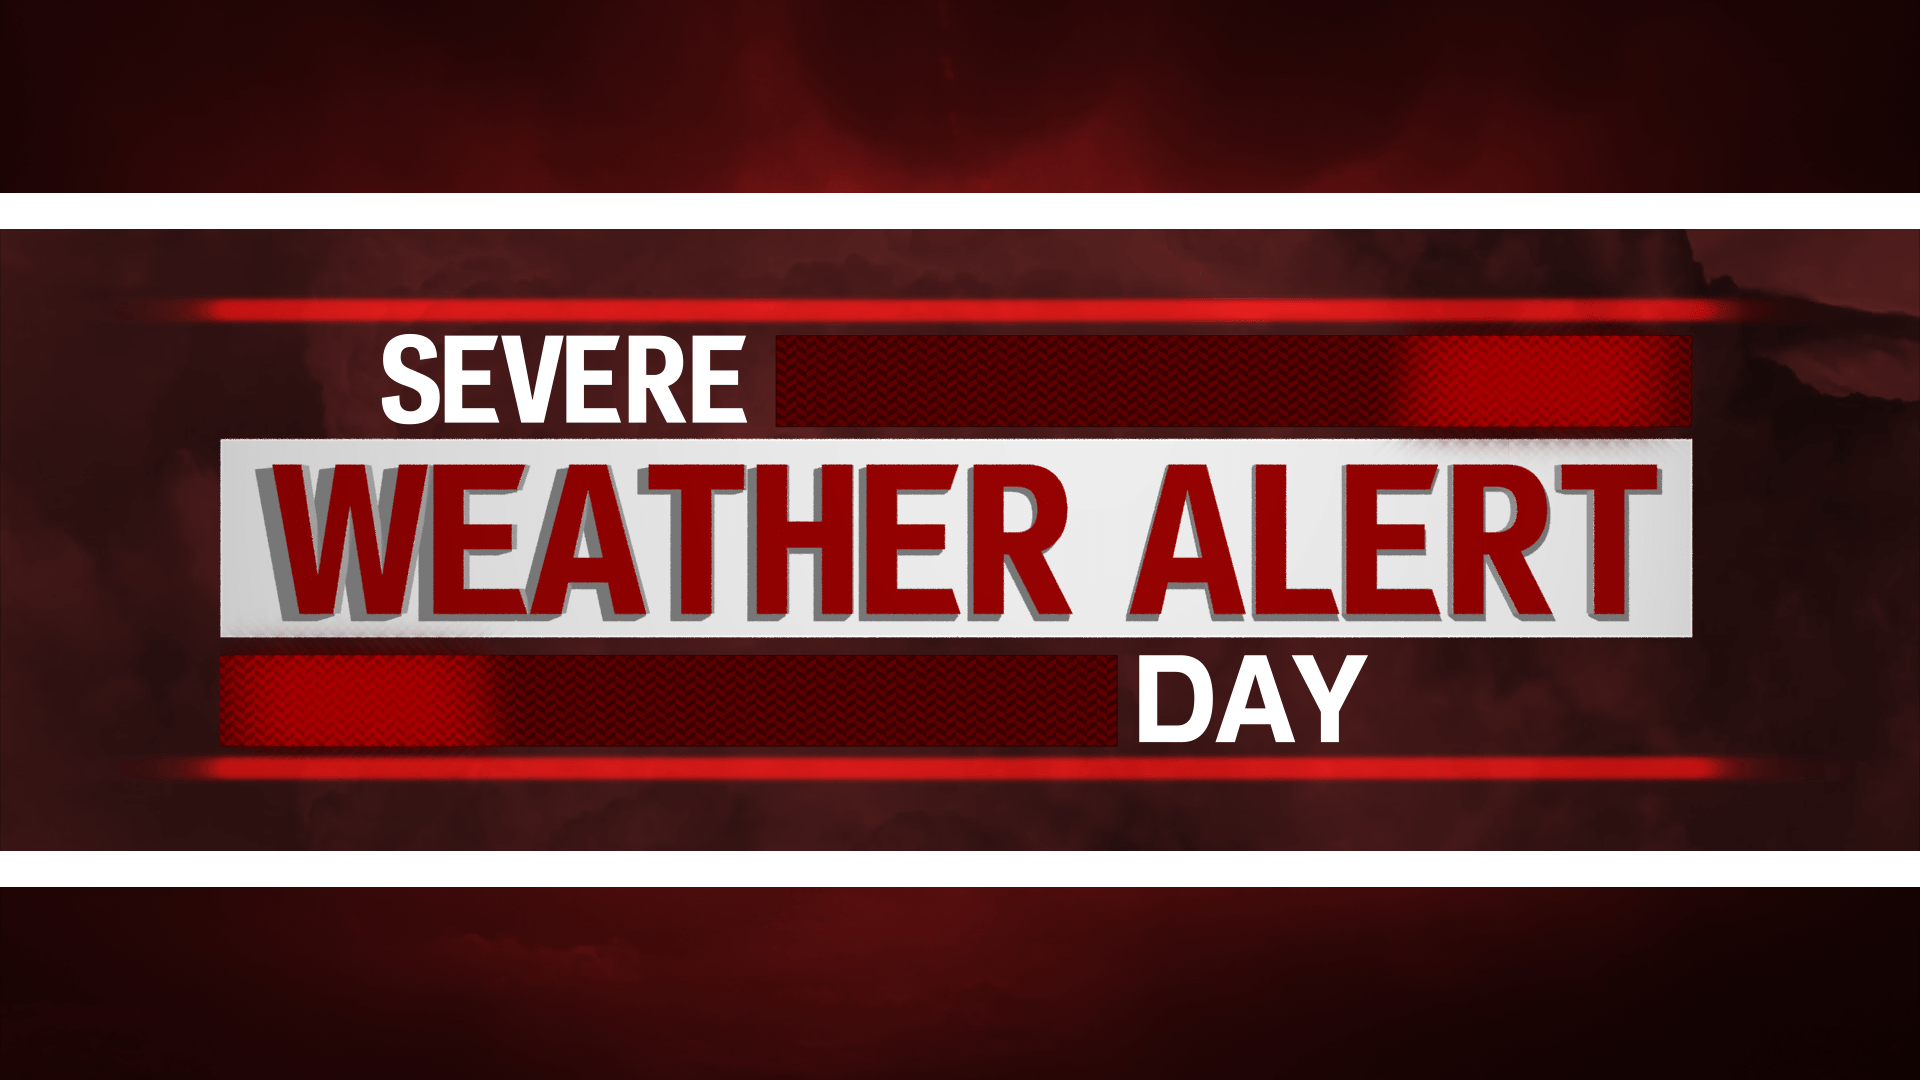 Severe Weather Alert Day